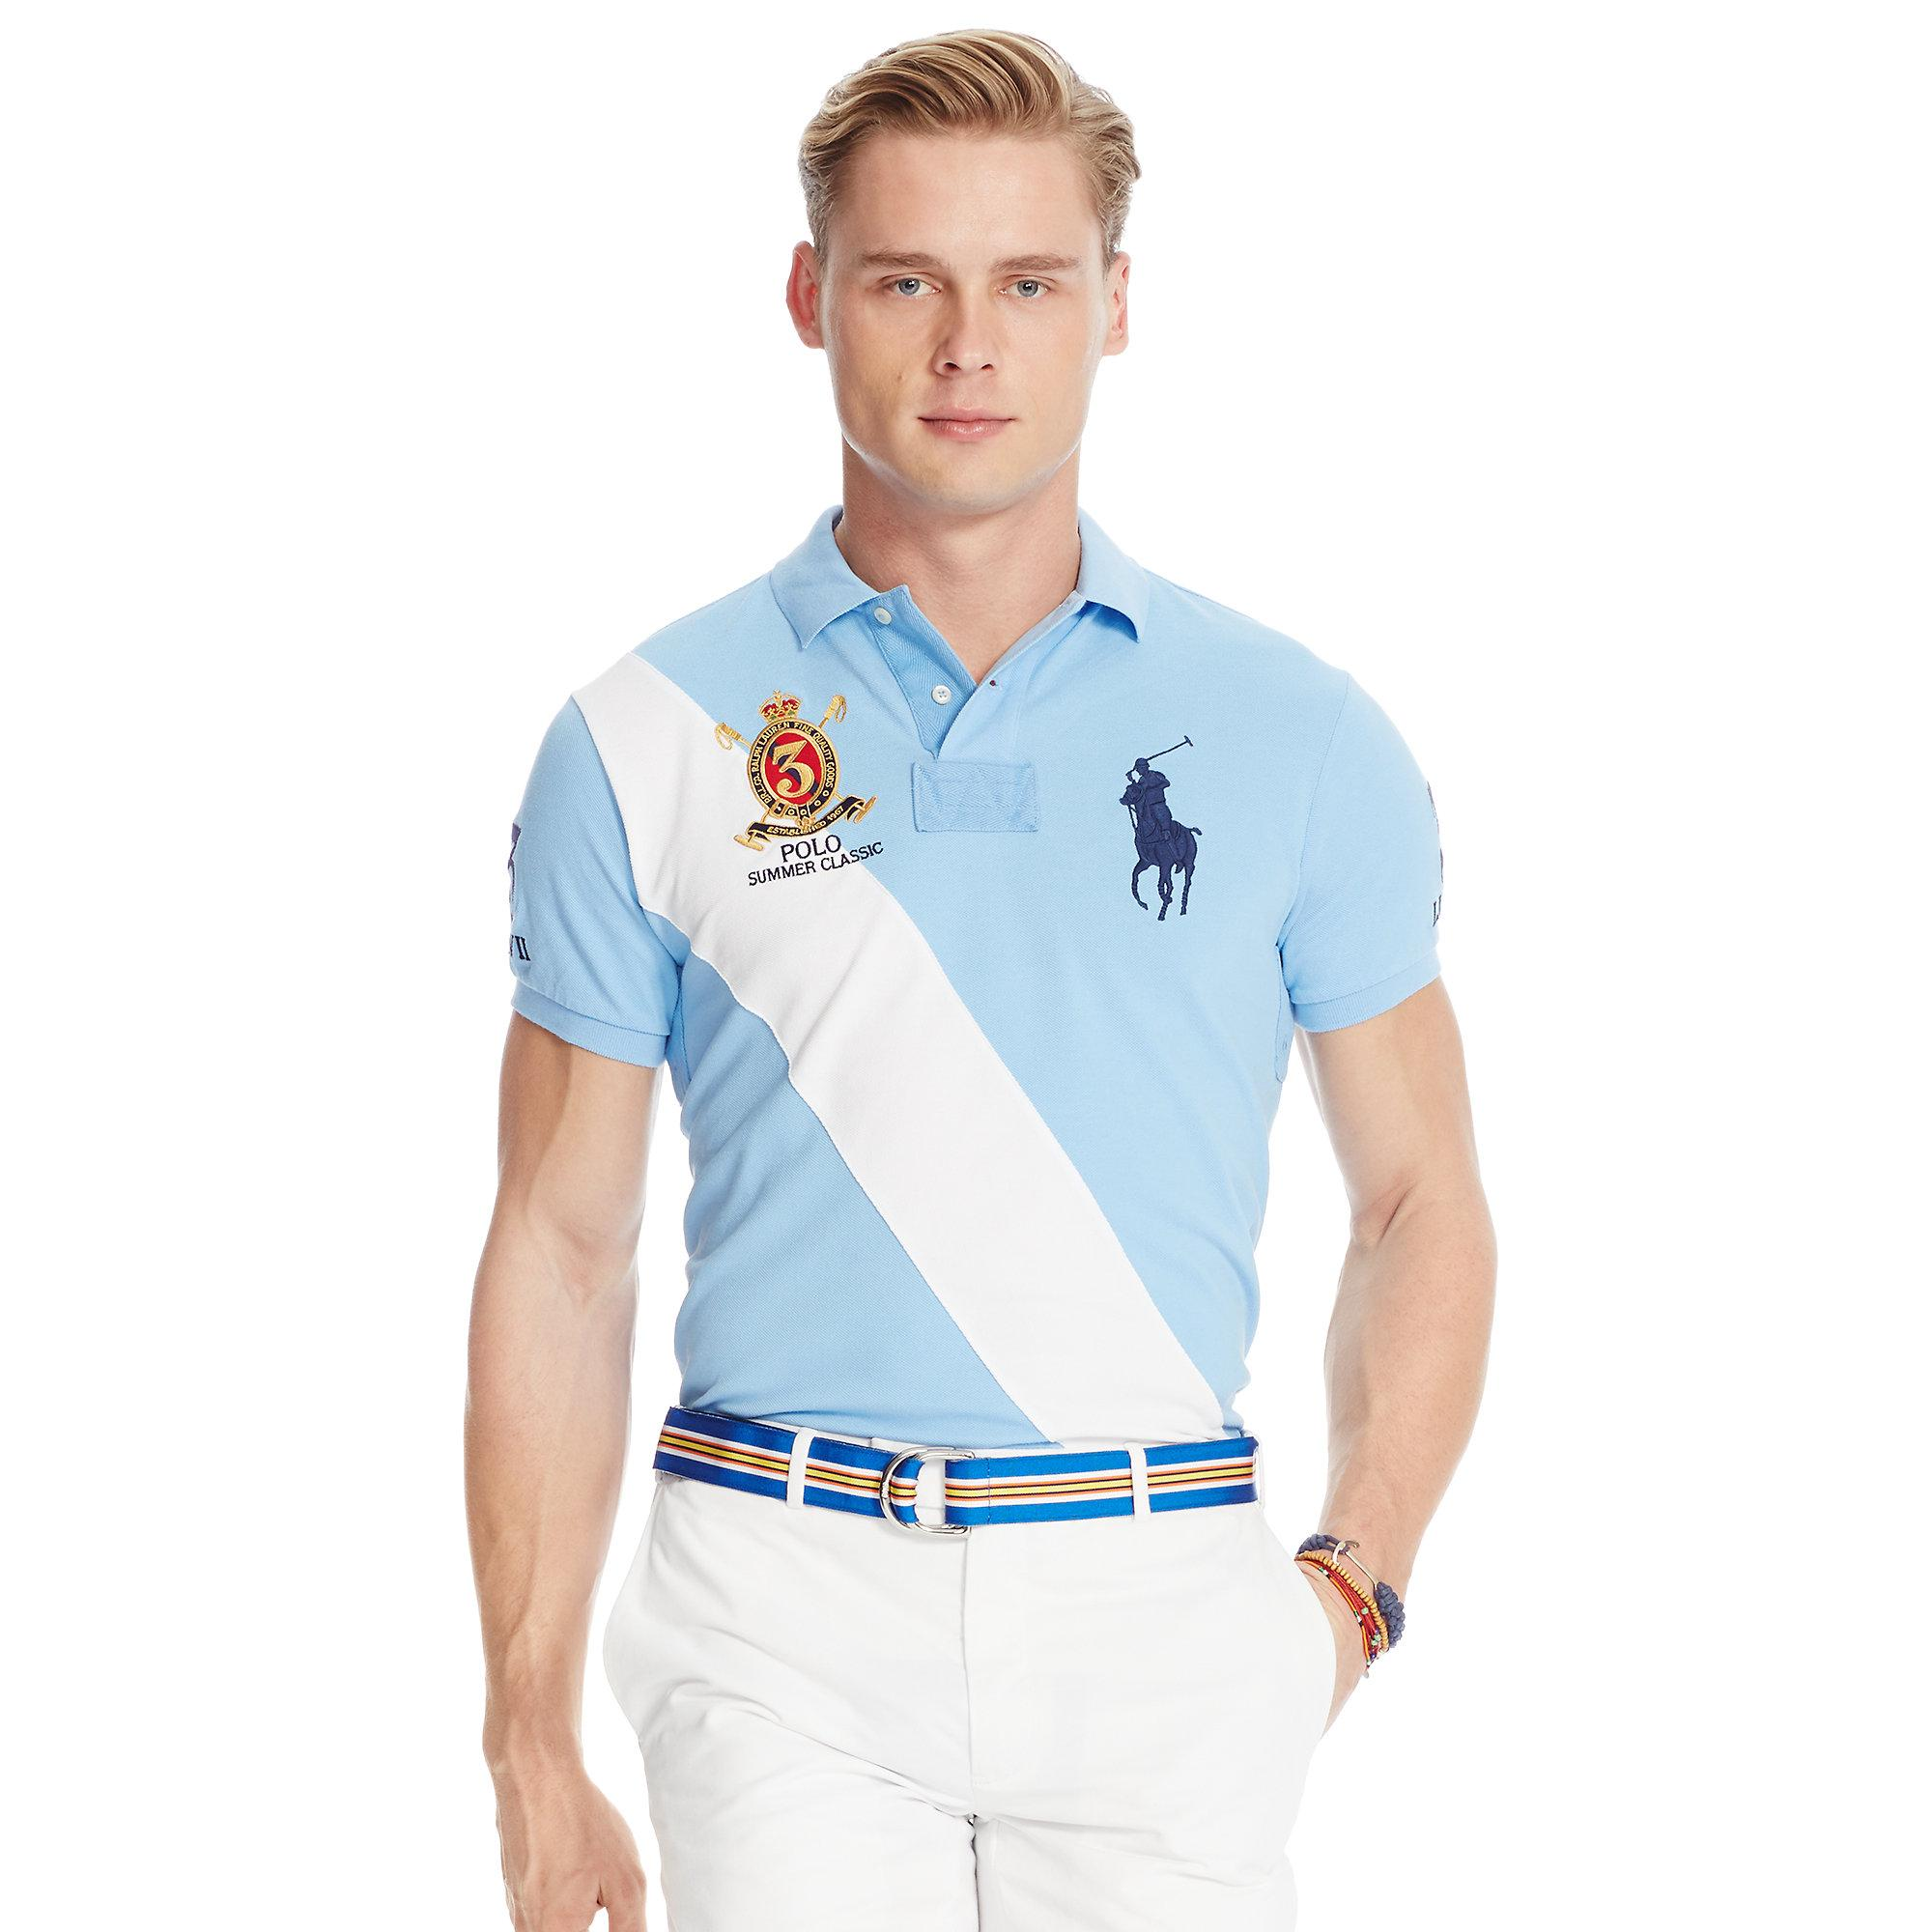 04c47d293f0 ... france lyst polo ralph lauren custom fit banner polo shirt in blue for  men 26a54 be951